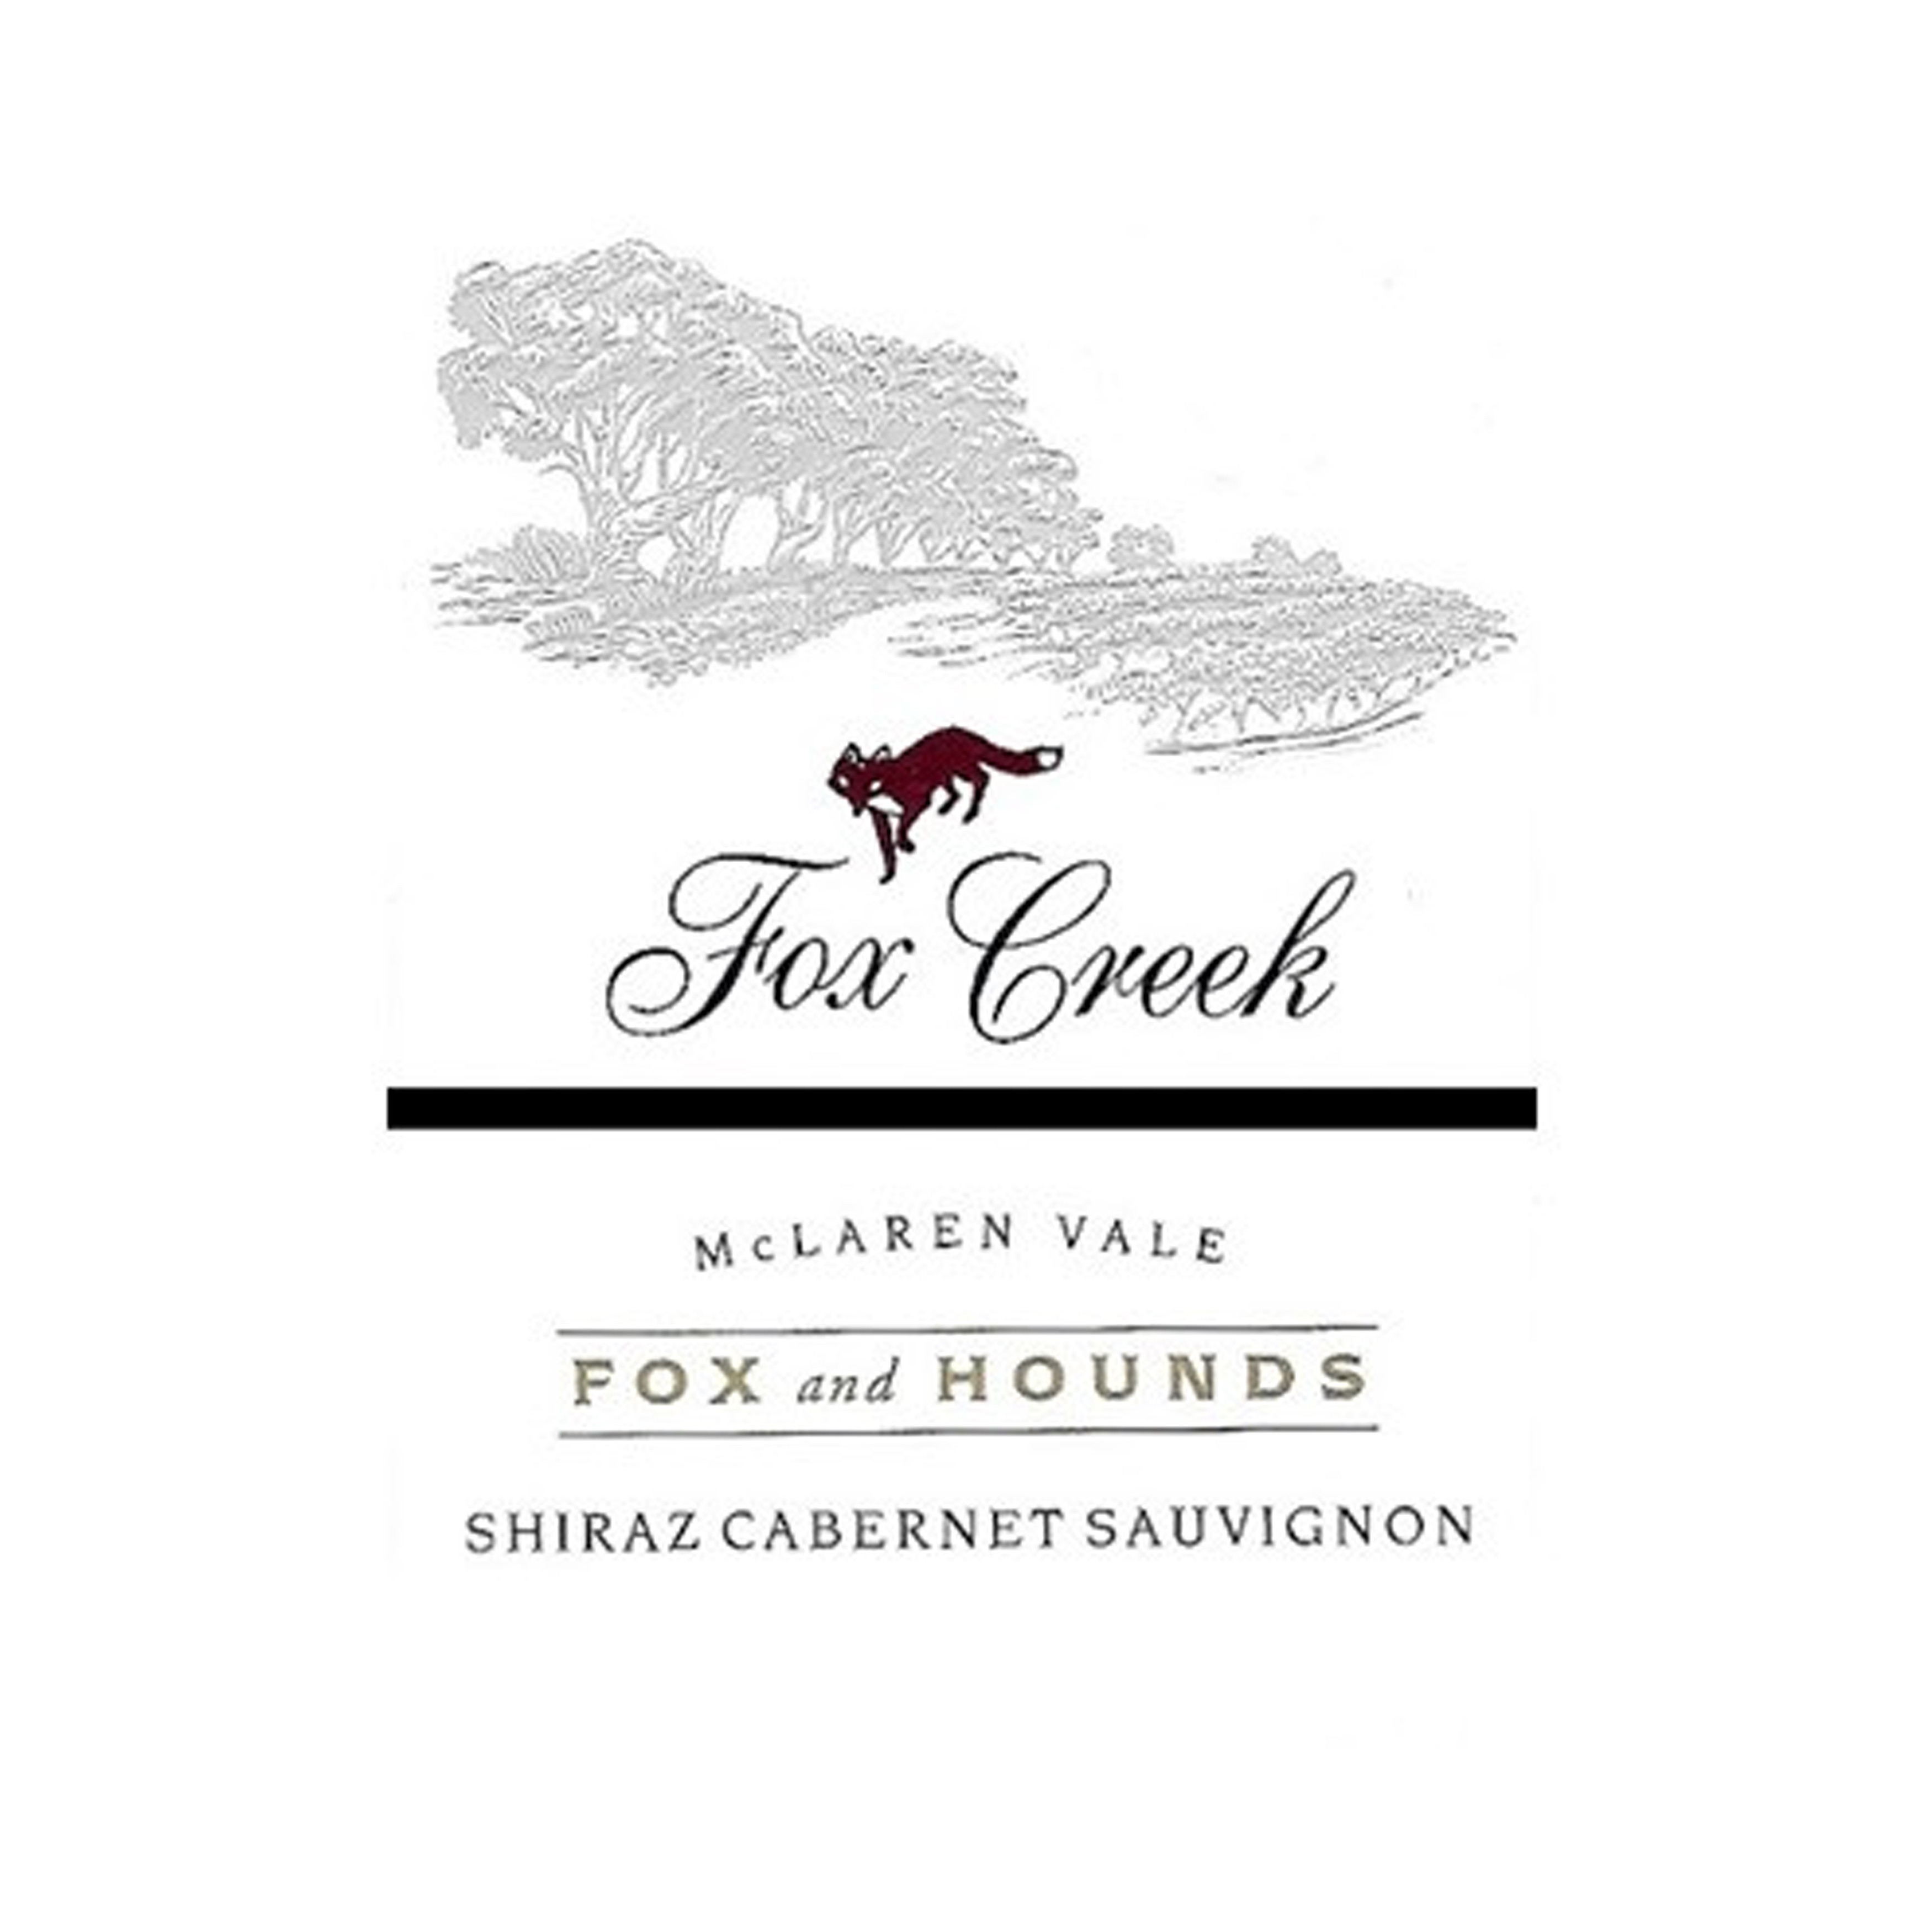 Fox Creek Fox & Hounds Shiraz Cabernet Sauvignon 2003 (12x75cl)